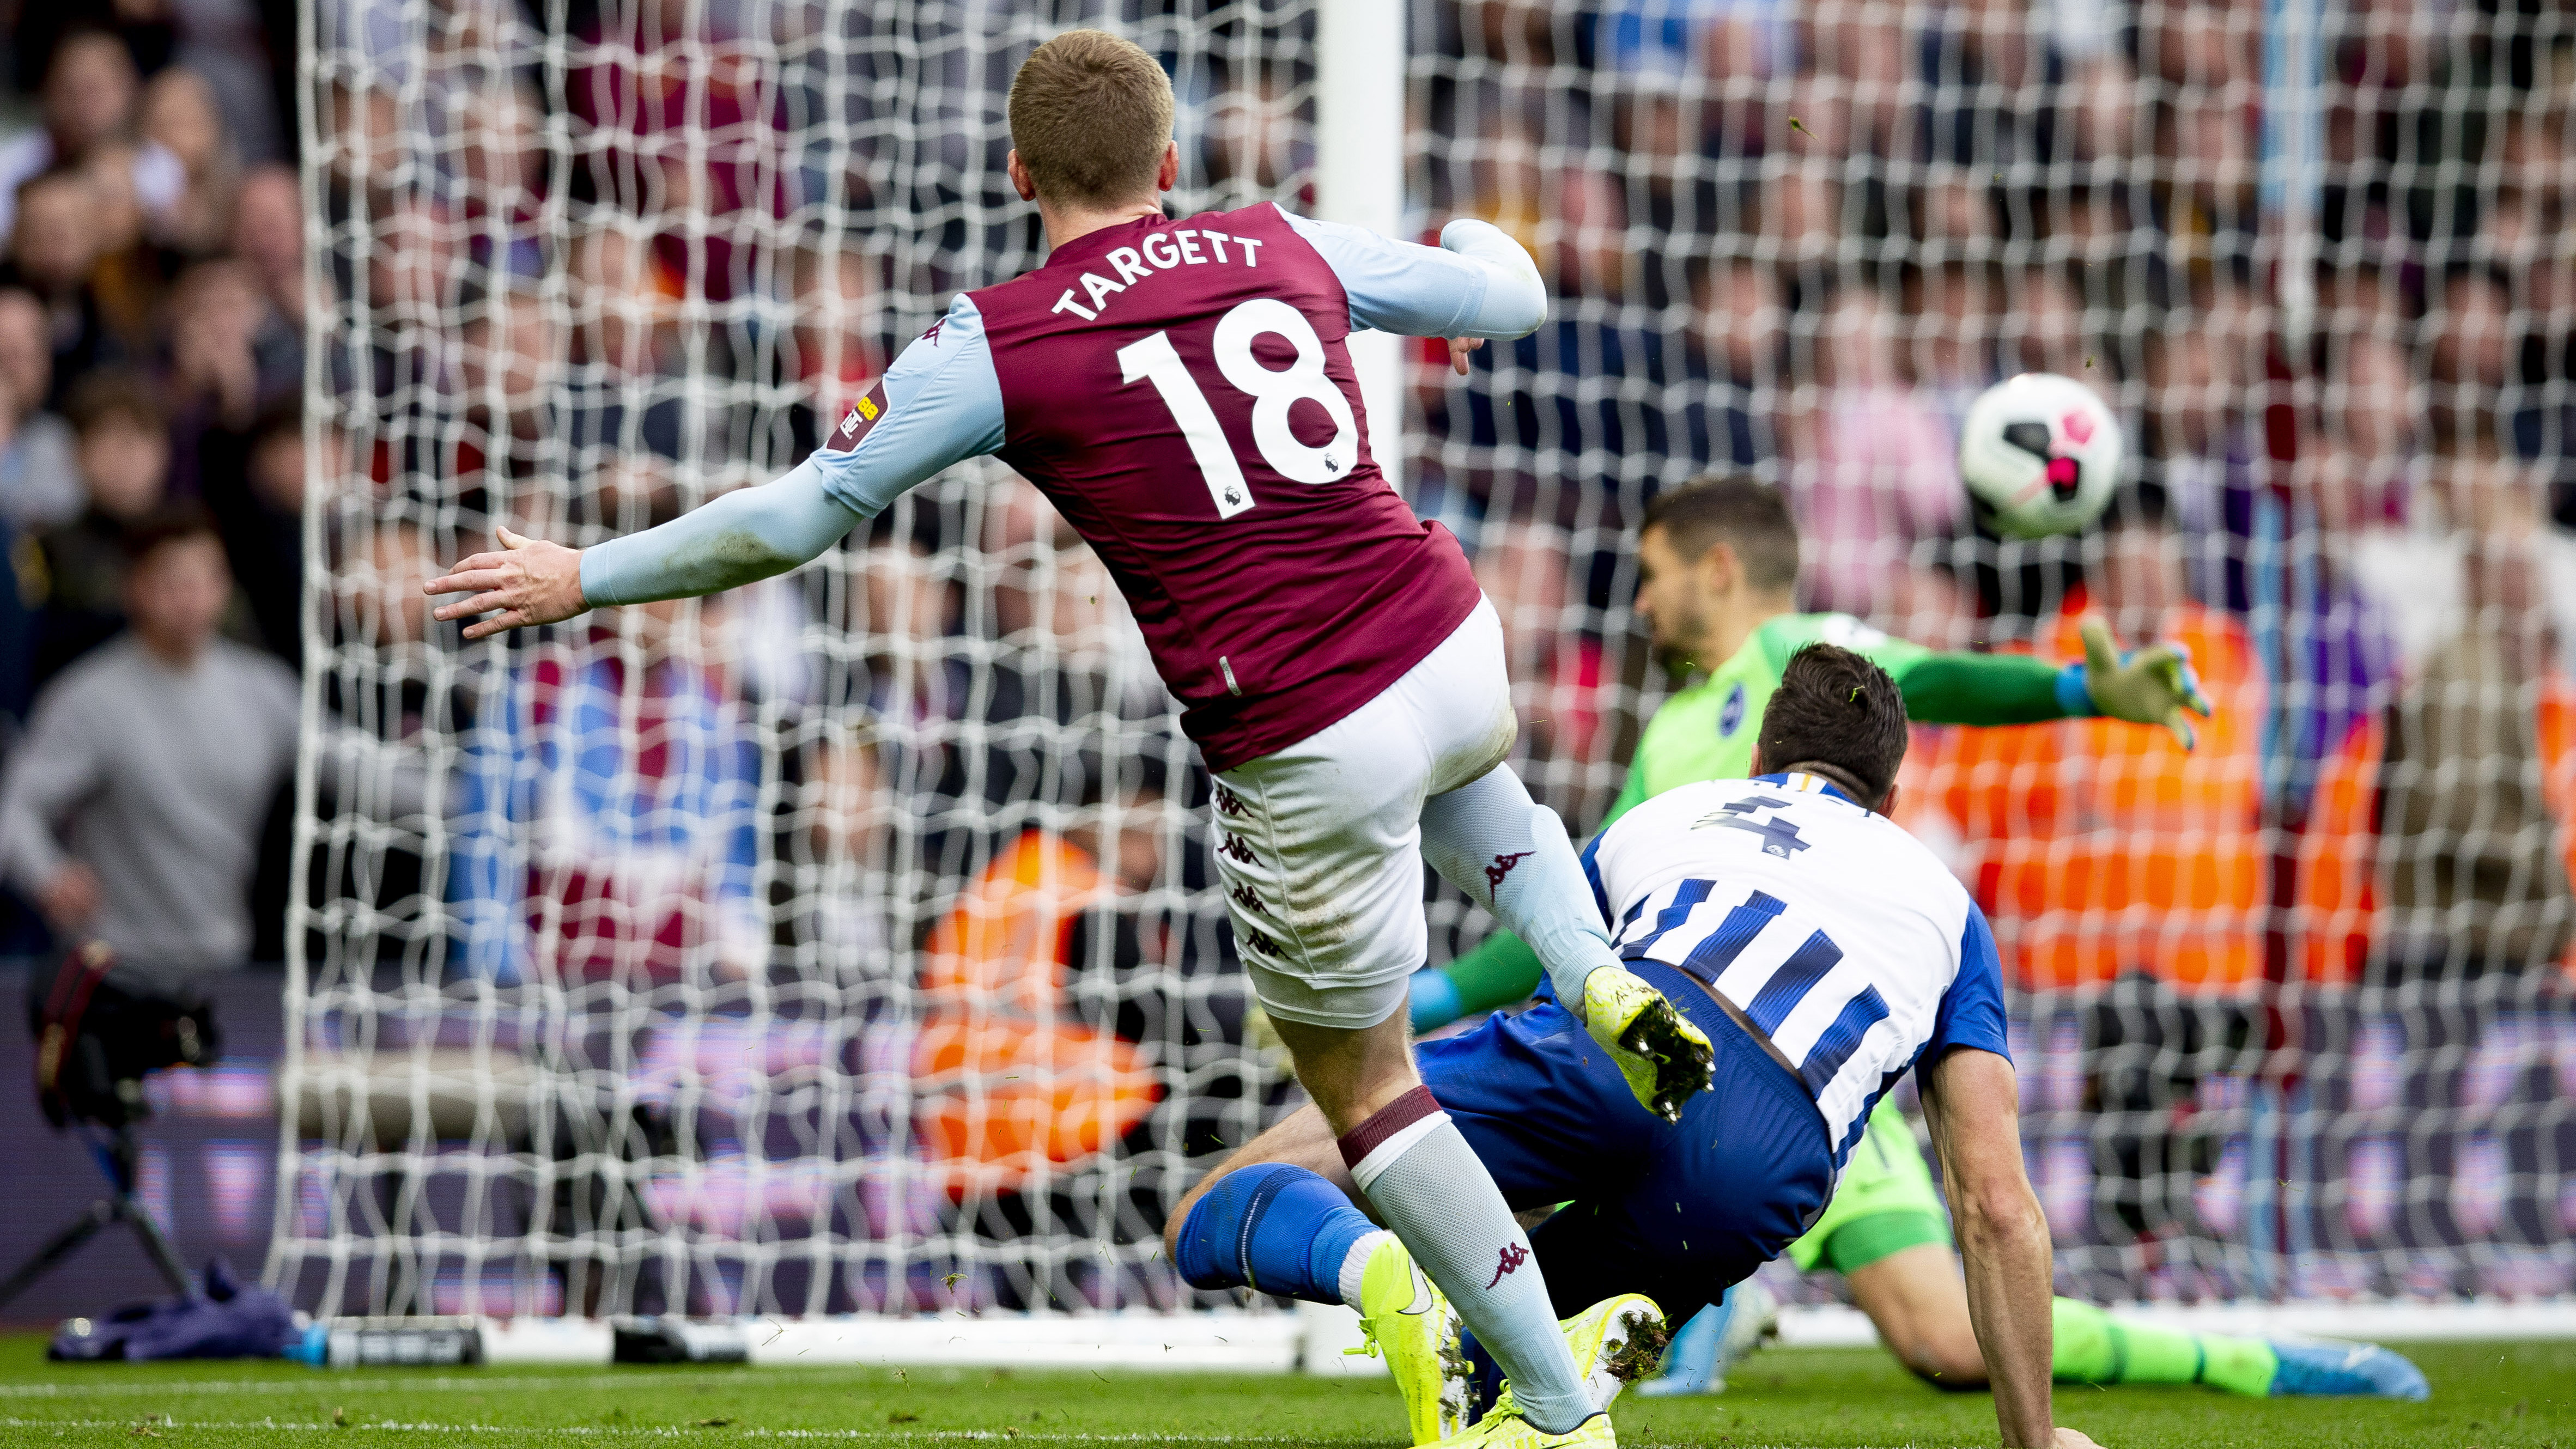 Extended highlights: Aston Villa 2, Brighton and Hove Albion 1